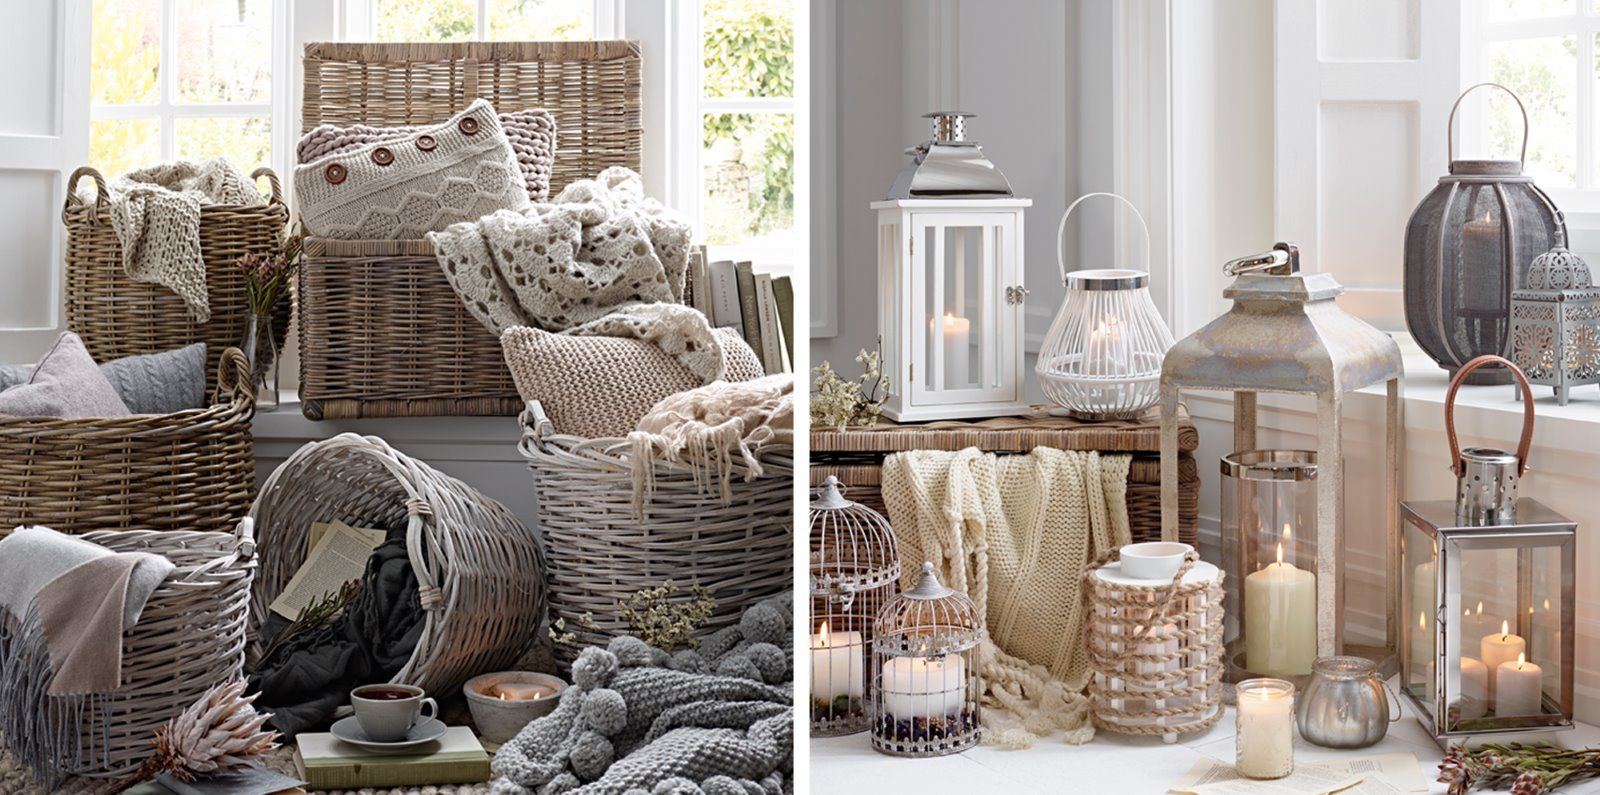 Image result for hygge style | Hygge | Hygge home, Hygge, Home